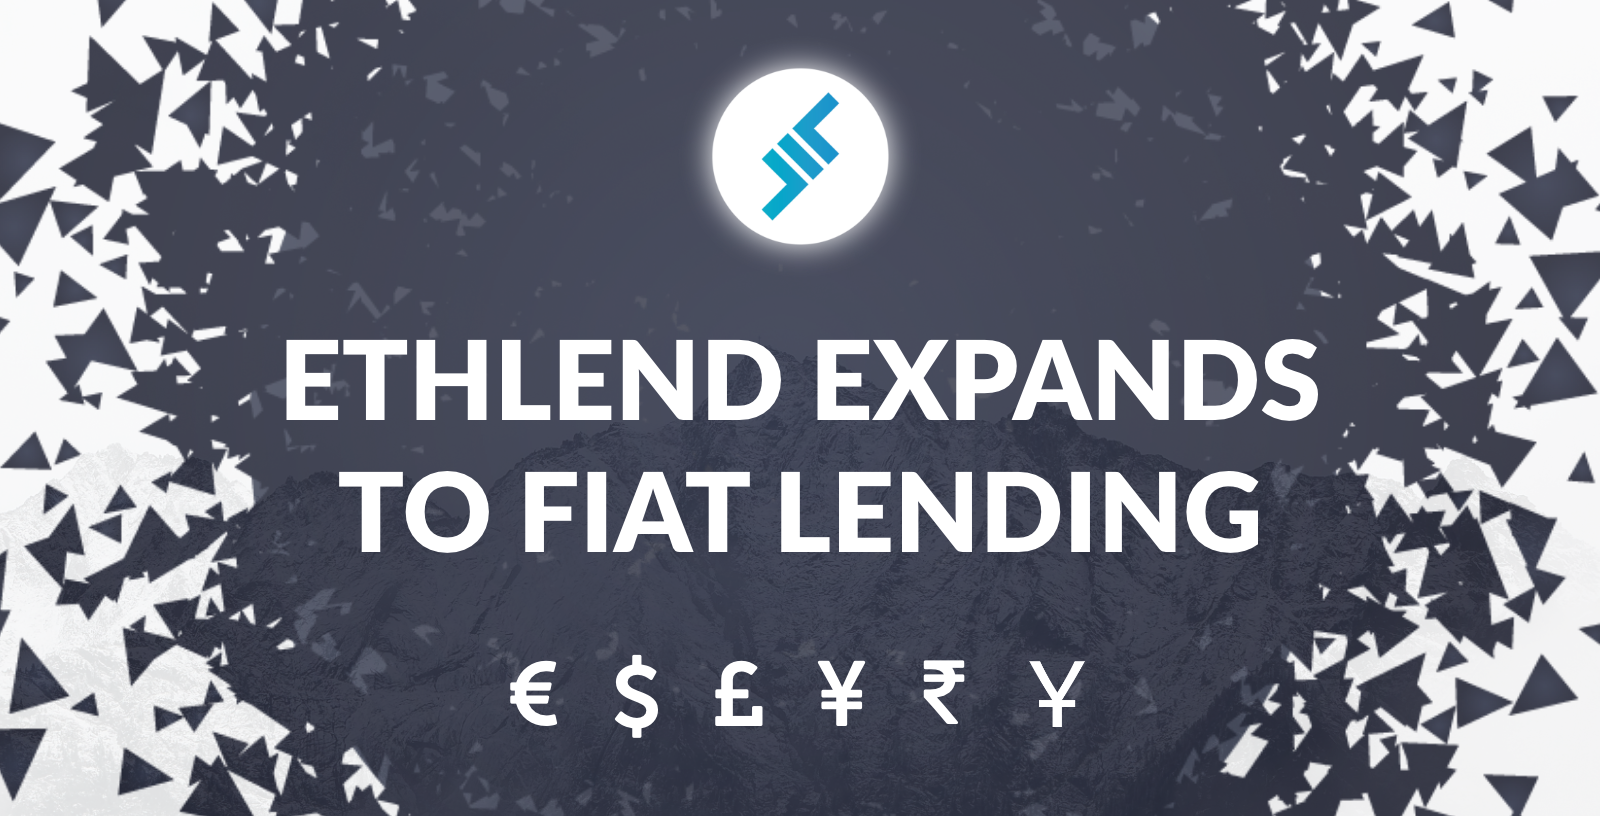 ETHLEND EXPANDS